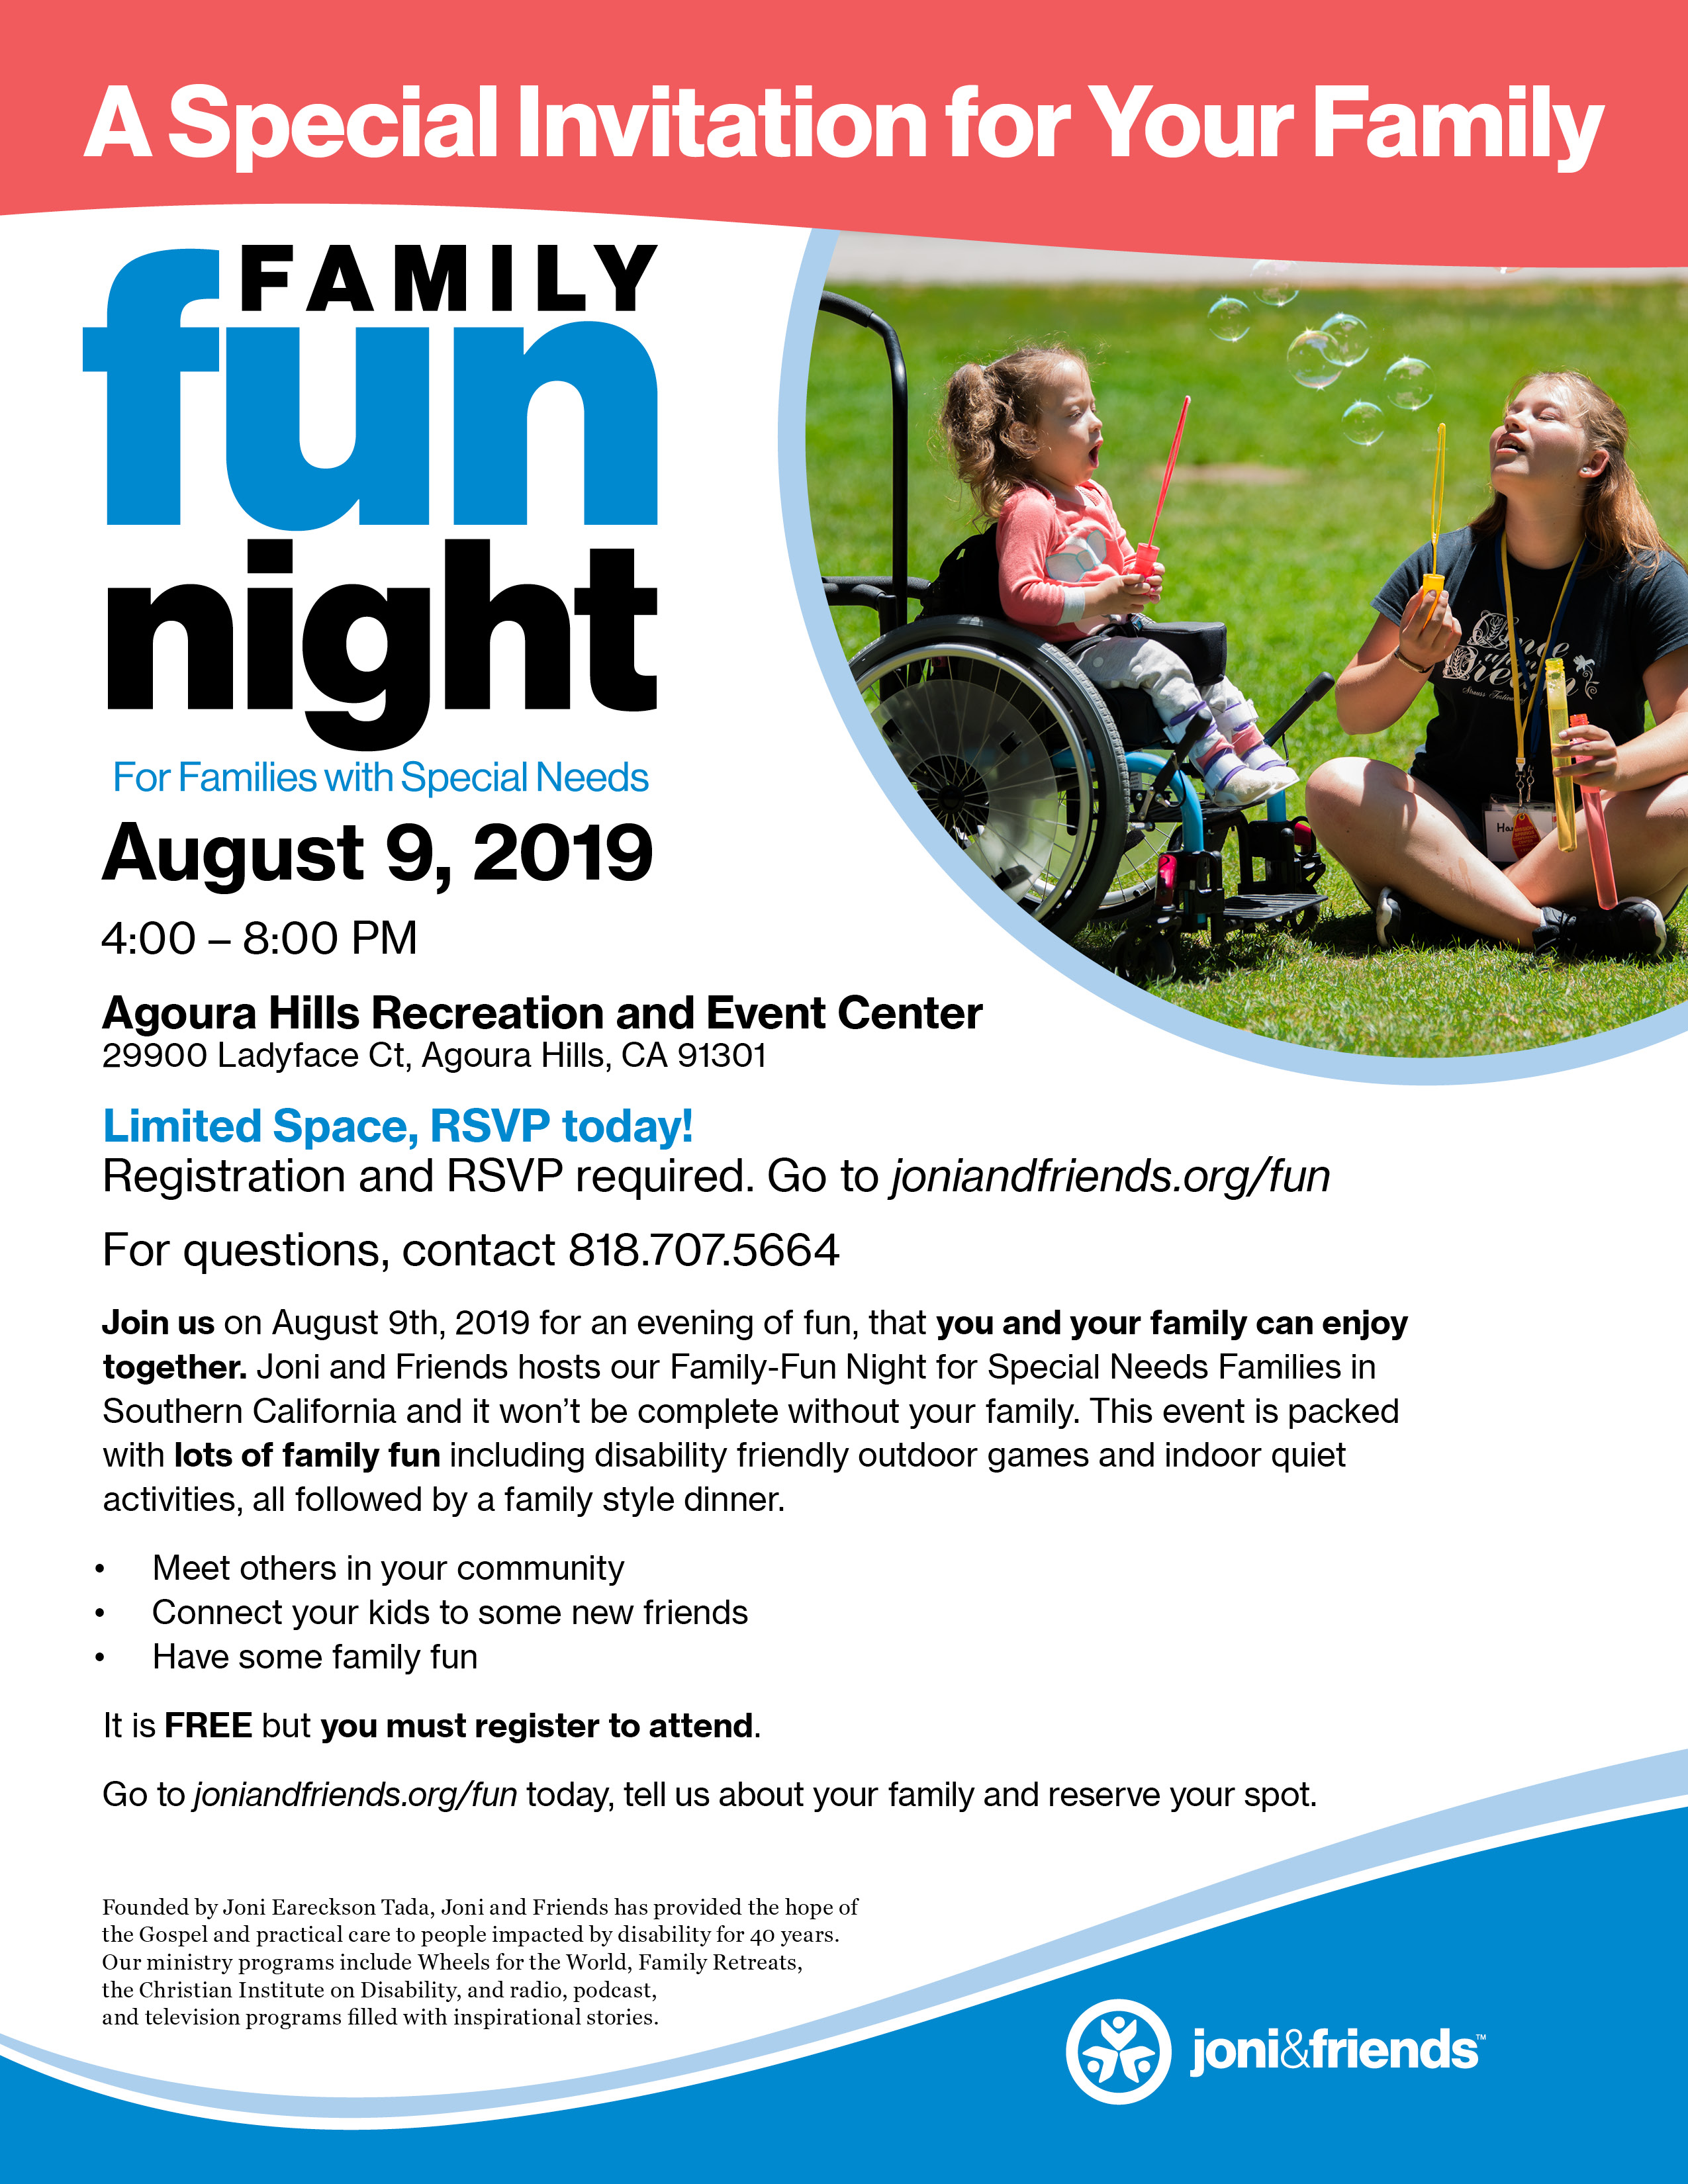 August 9 Joni And Friends Family Fun Night Invitation WEB